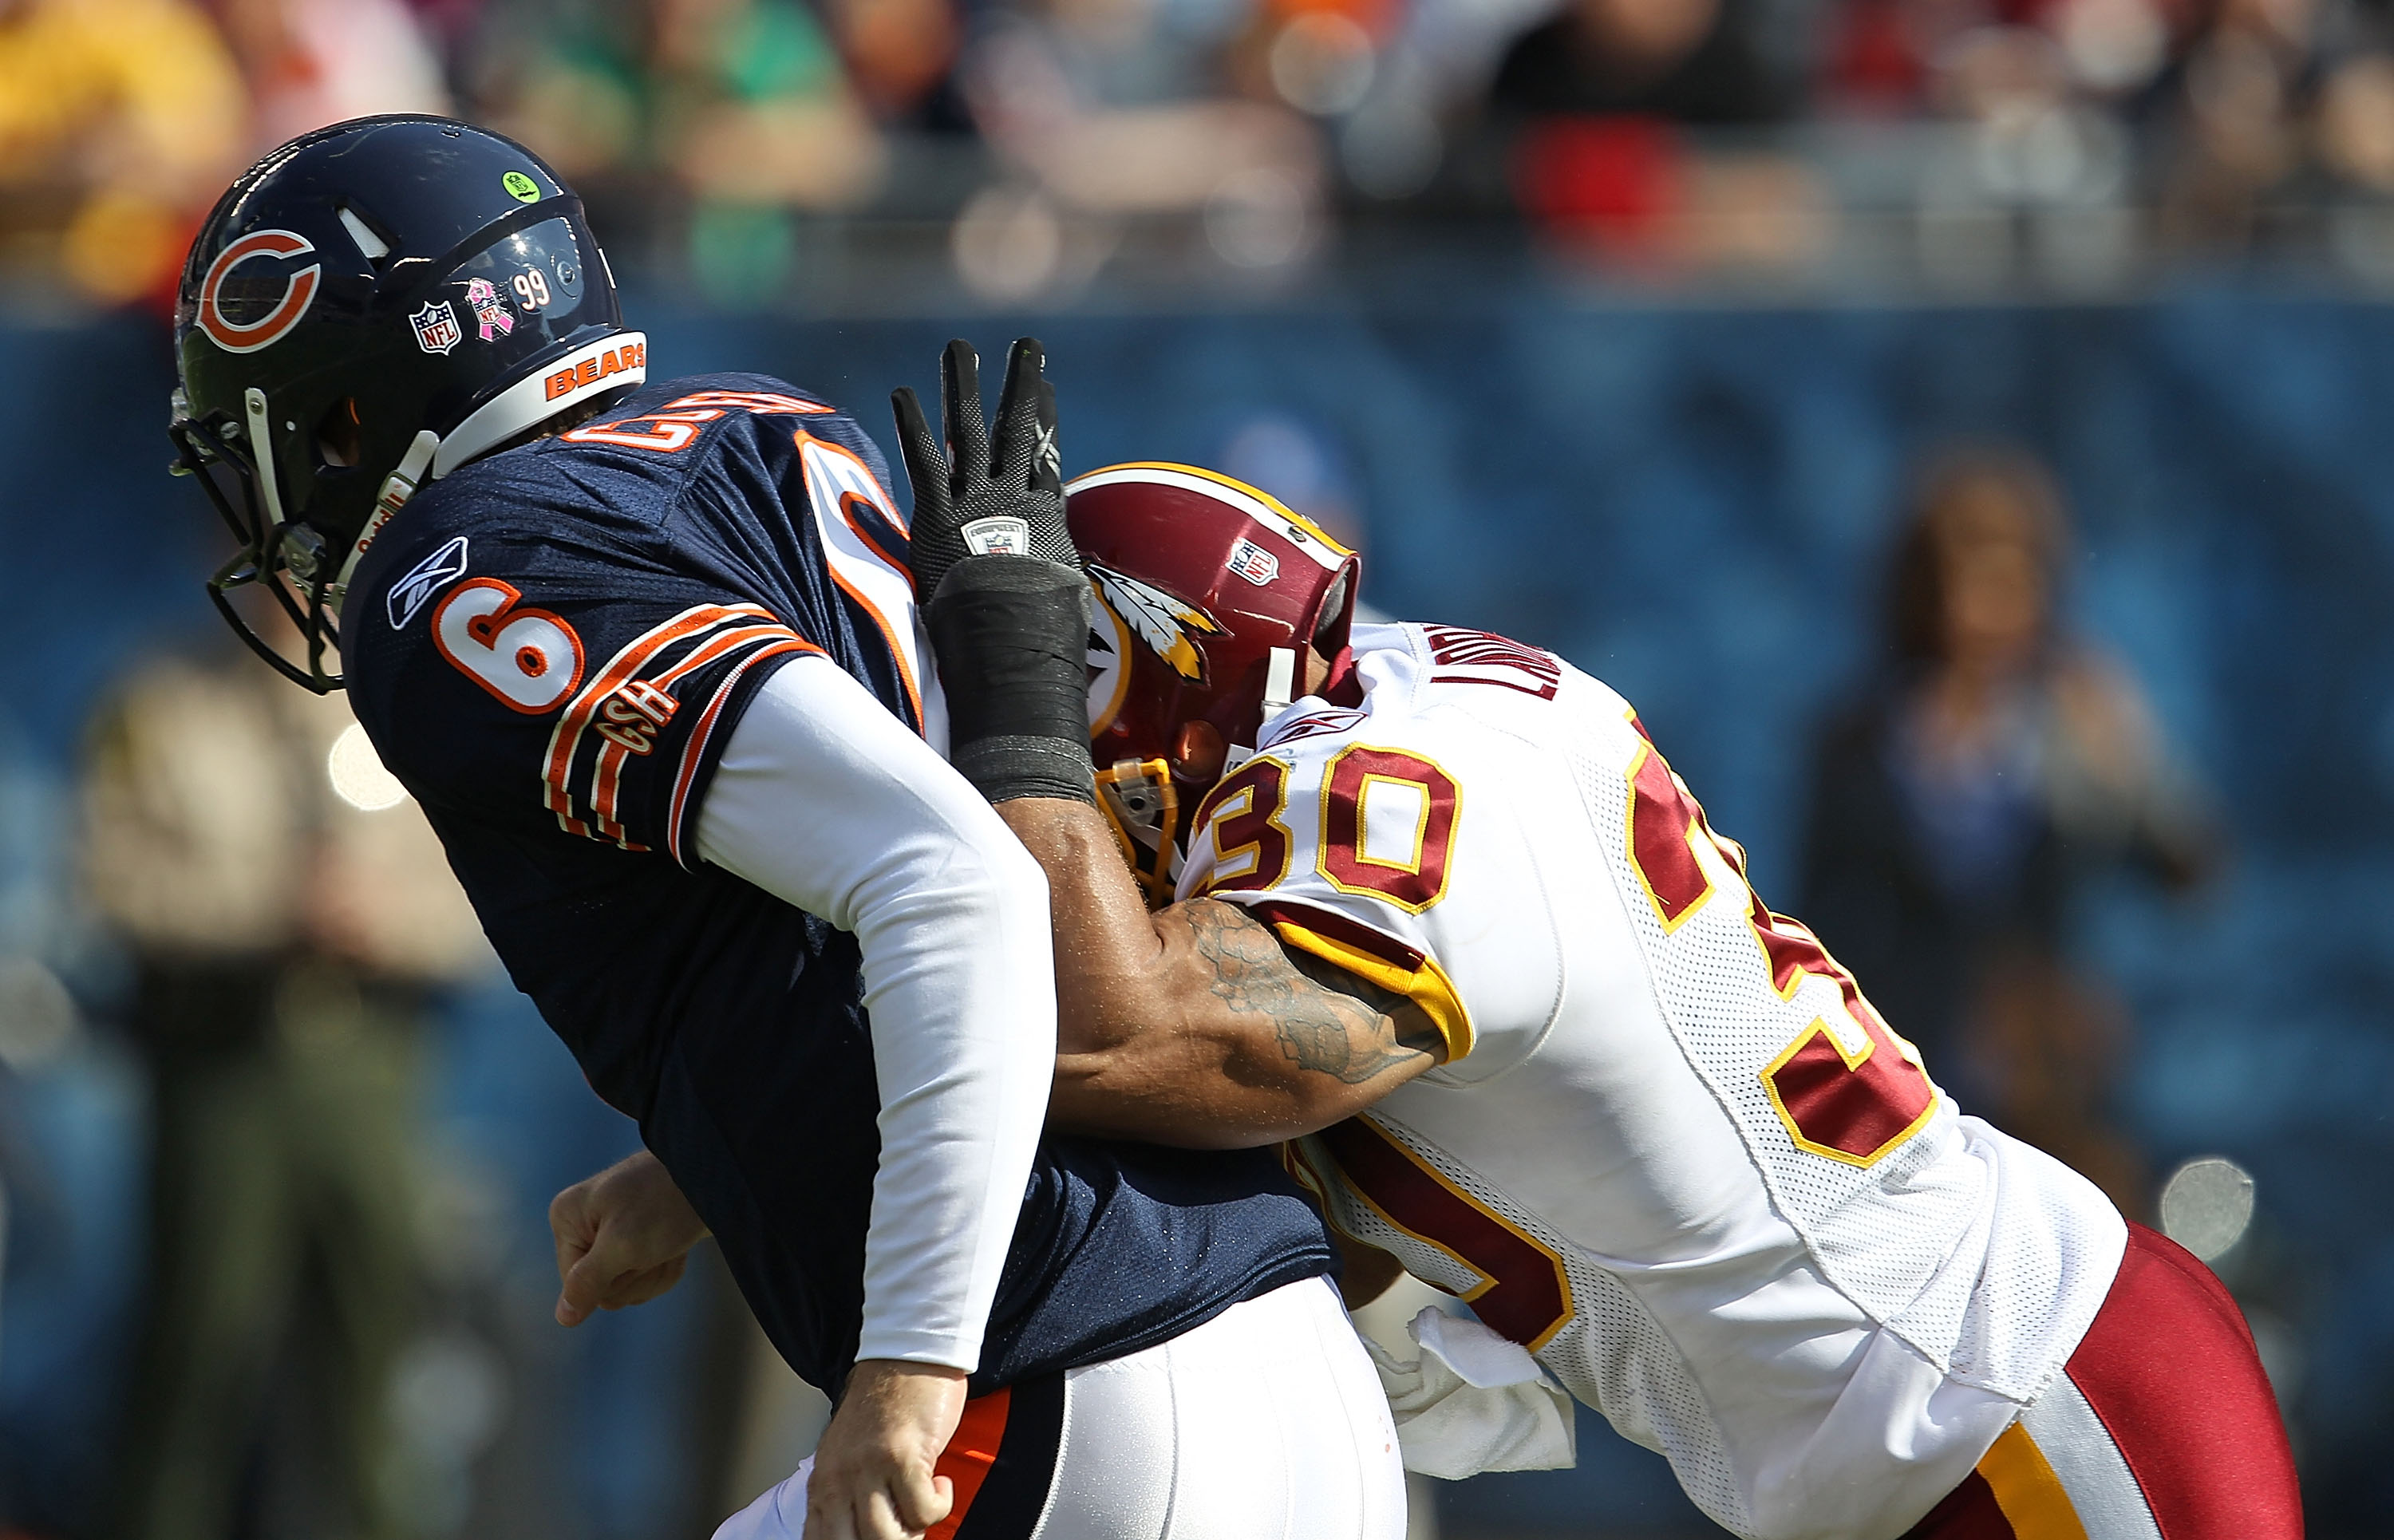 CHICAGO - OCTOBER 24: Jay Cutler #6 of the Chicago Bears is hit in the back by LaRon Landry #30 of the Washington Redskins after passing at Soldier Field on October 24, 2010 in Chicago, Illinois. (Photo by Jonathan Daniel/Getty Images)